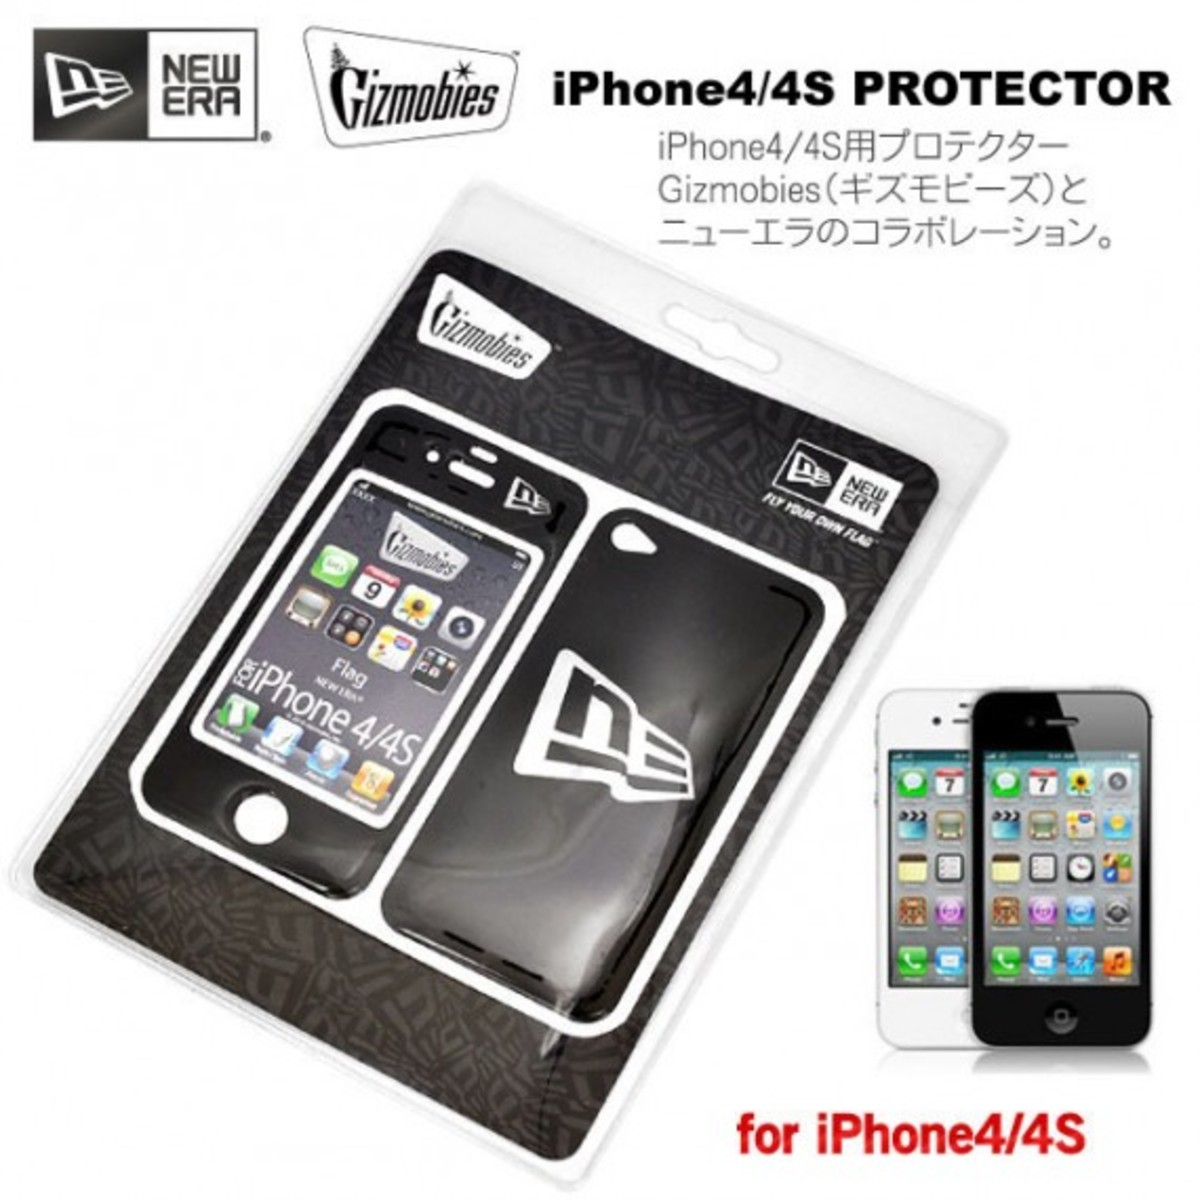 new-era-gizmobies-iphone-protective-cover-01